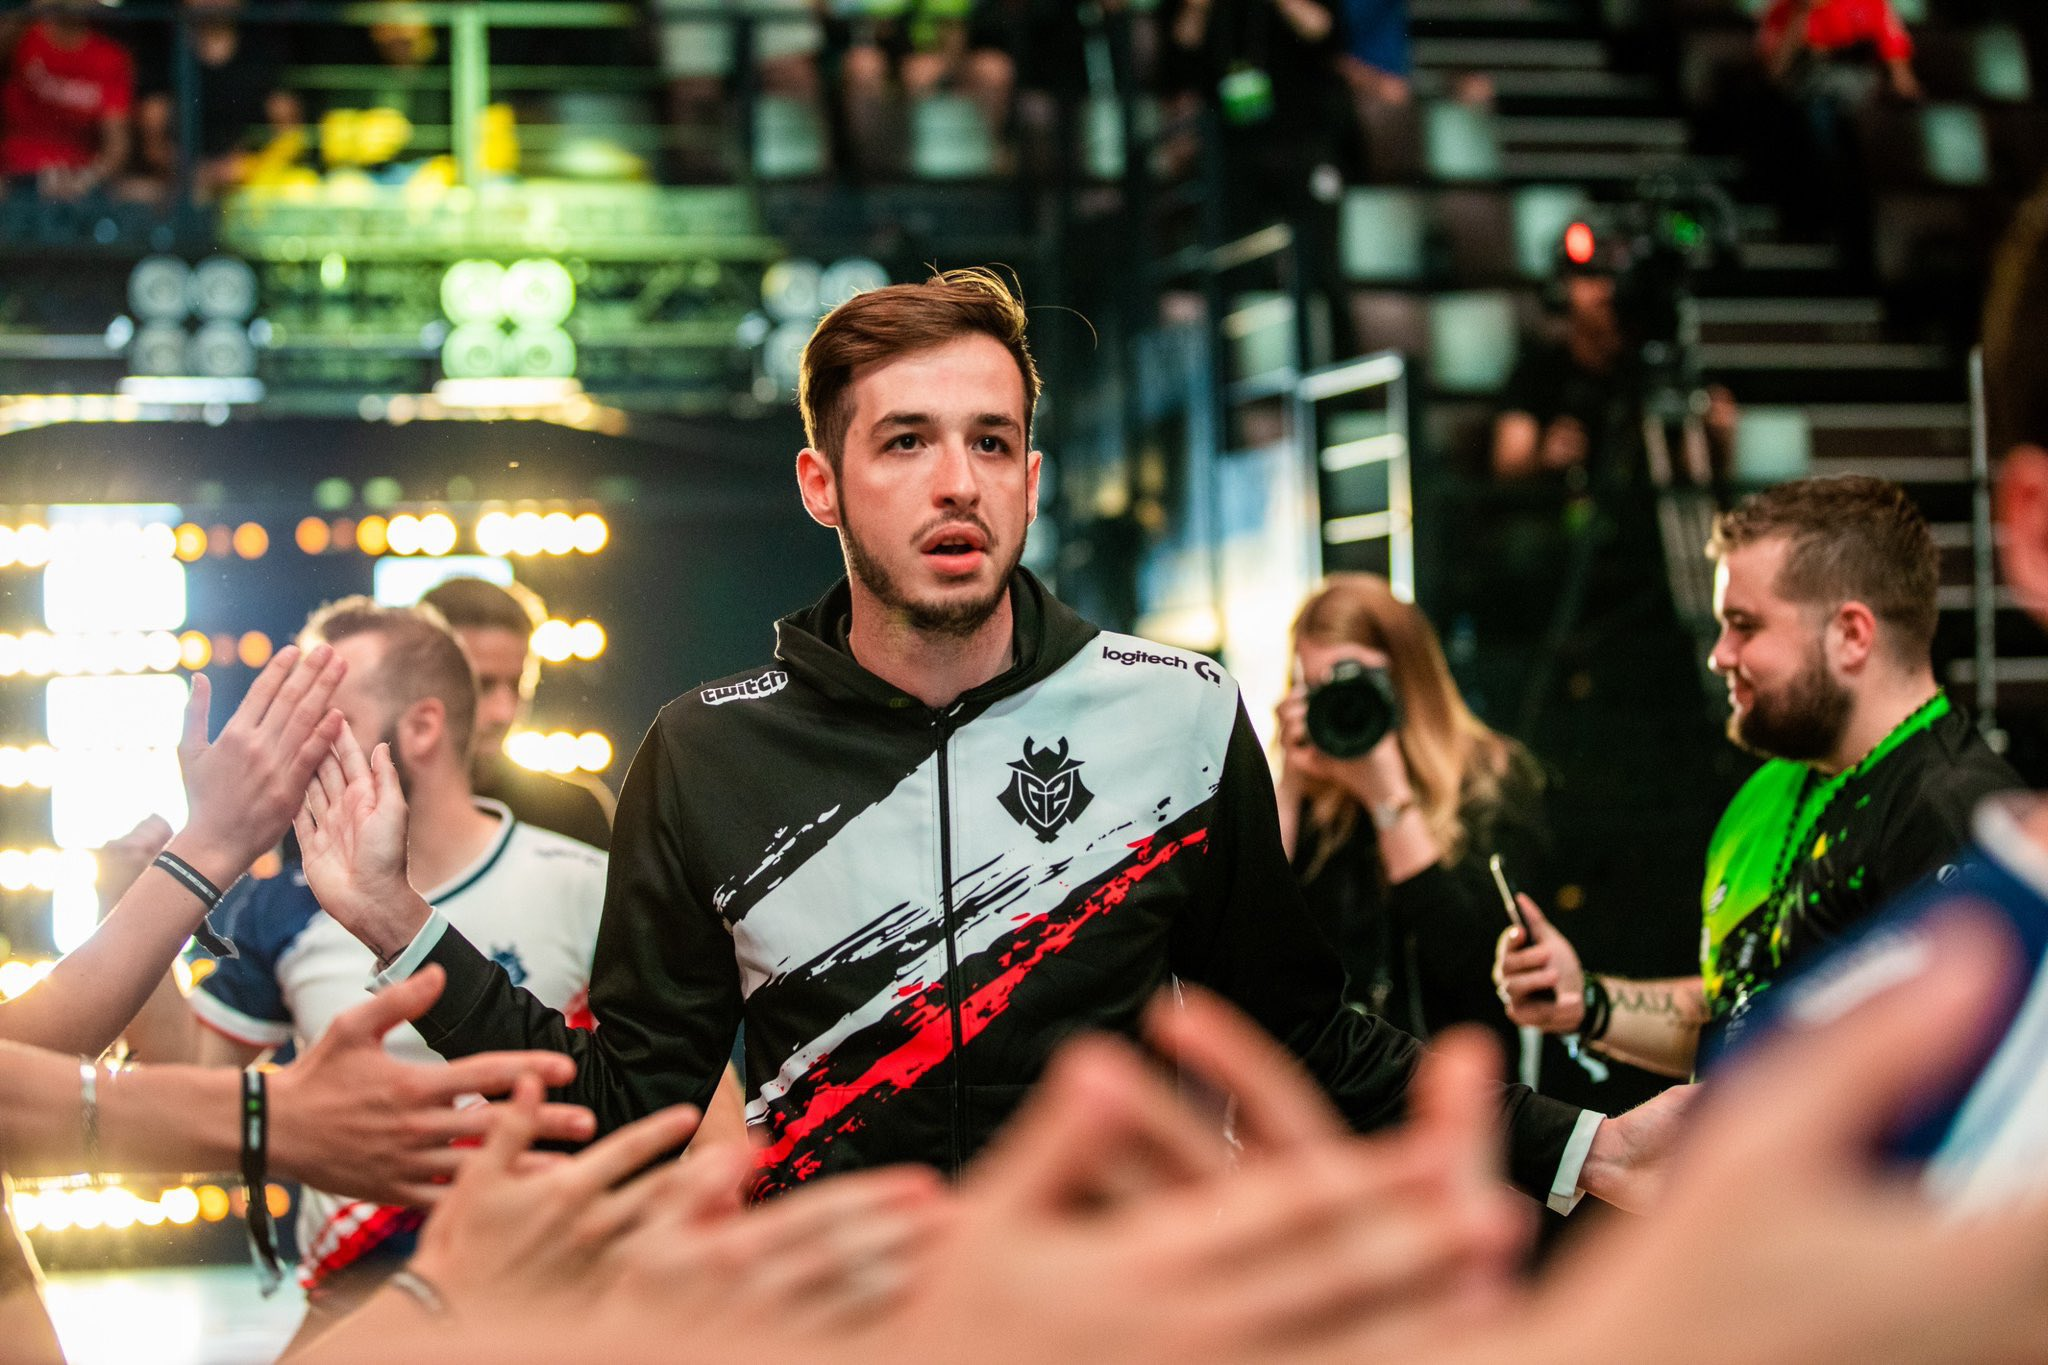 If G2 is to make a run at IEM Chicago, they need kennyS to perform as he did against Team Liquid at the ESL Pro League Finals.